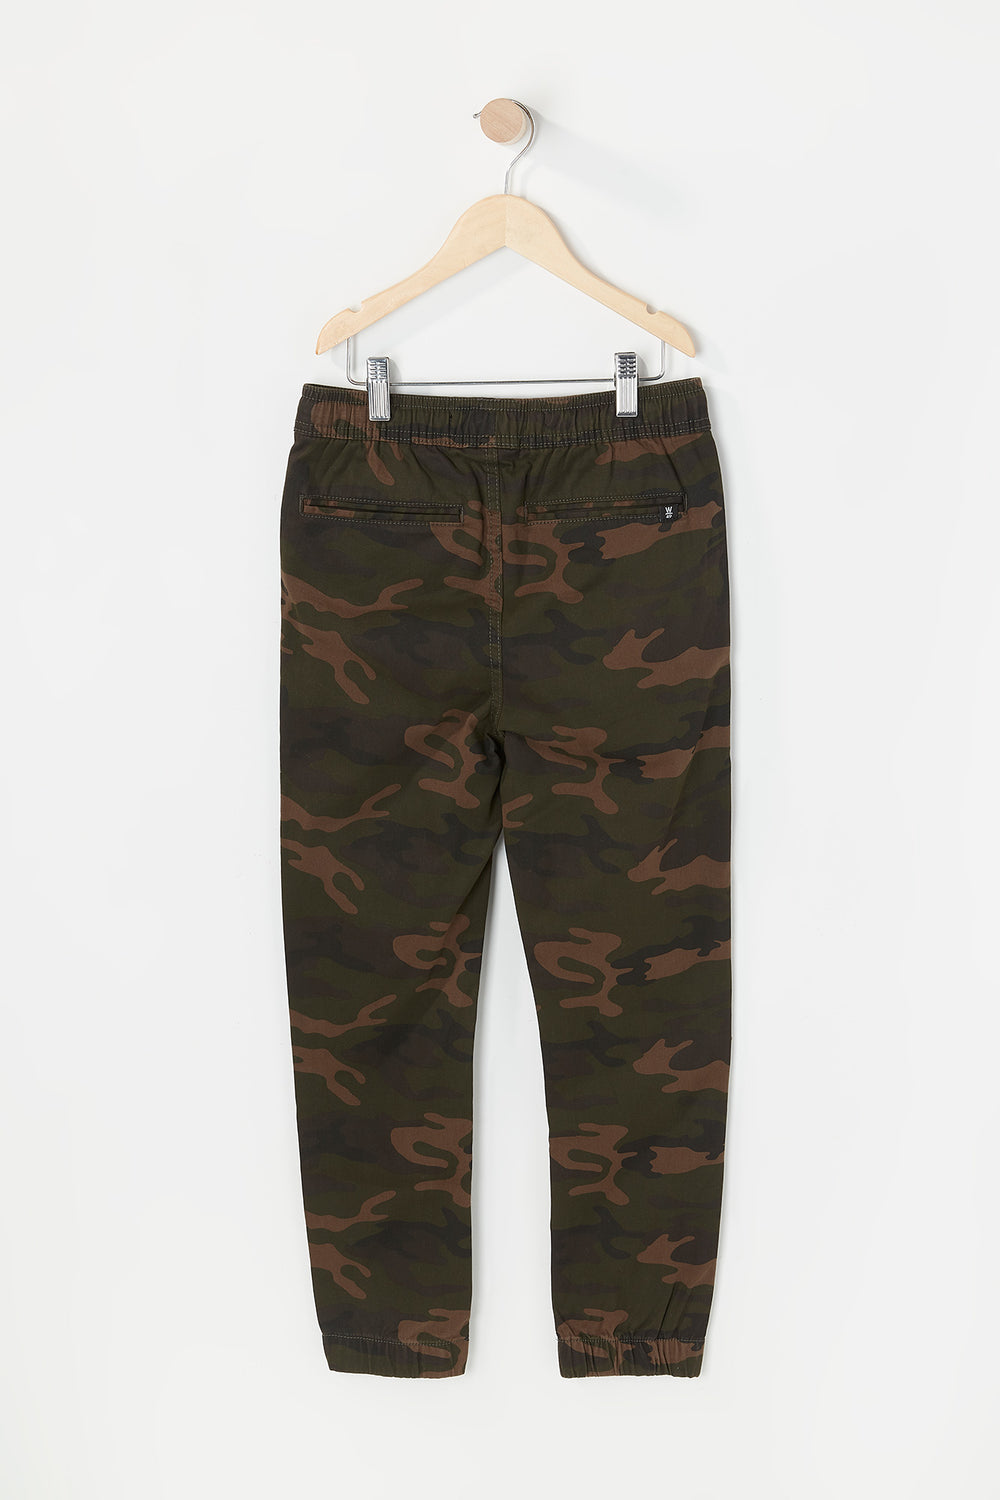 West49 Youth Twill Camo Jogger Camouflage